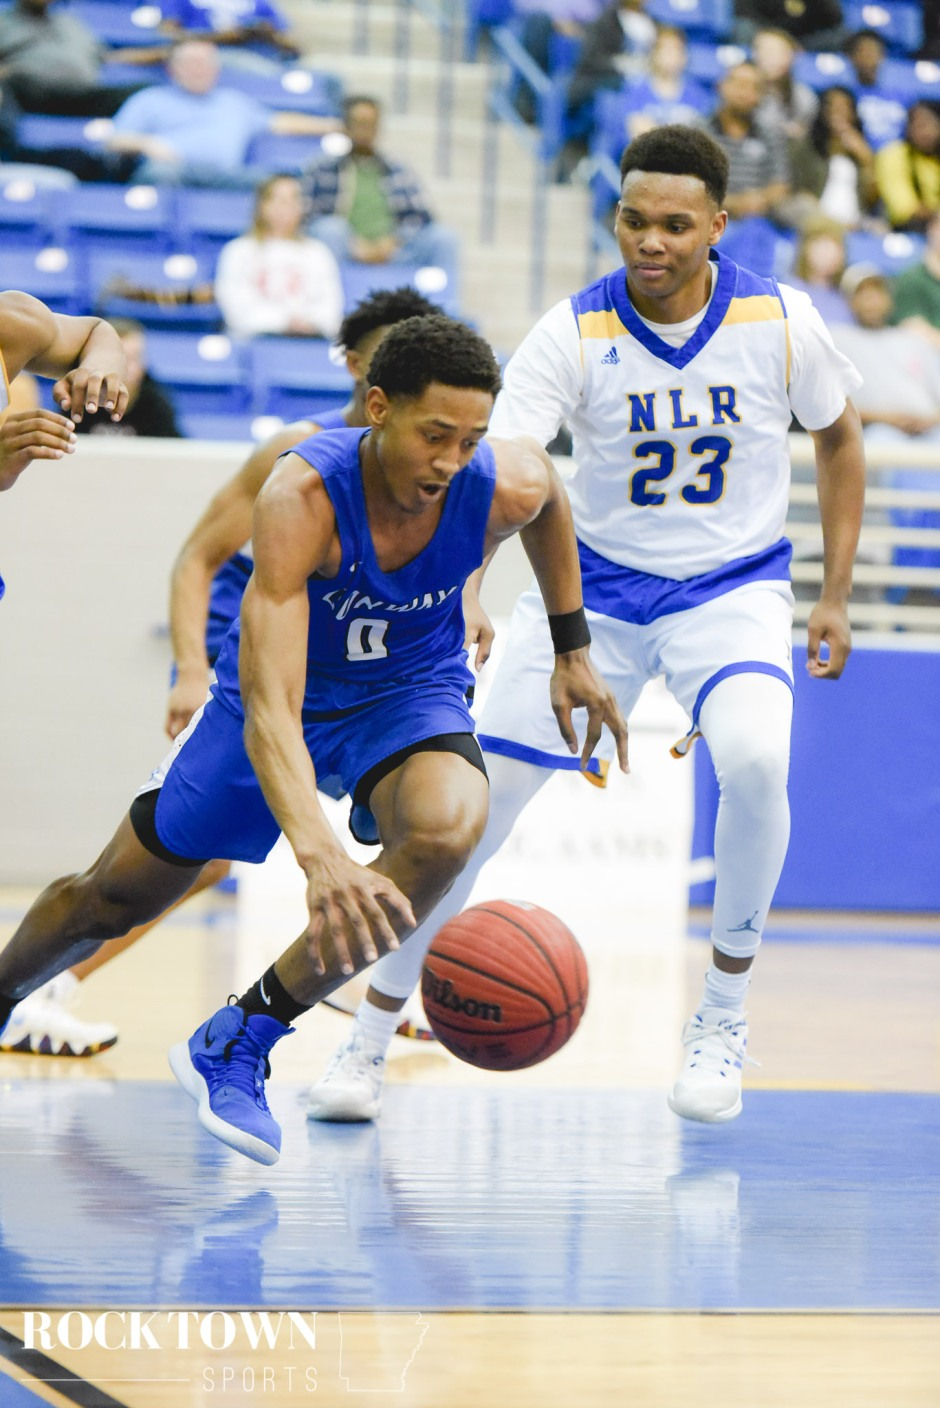 Conway_NLR_bball19(i)-51